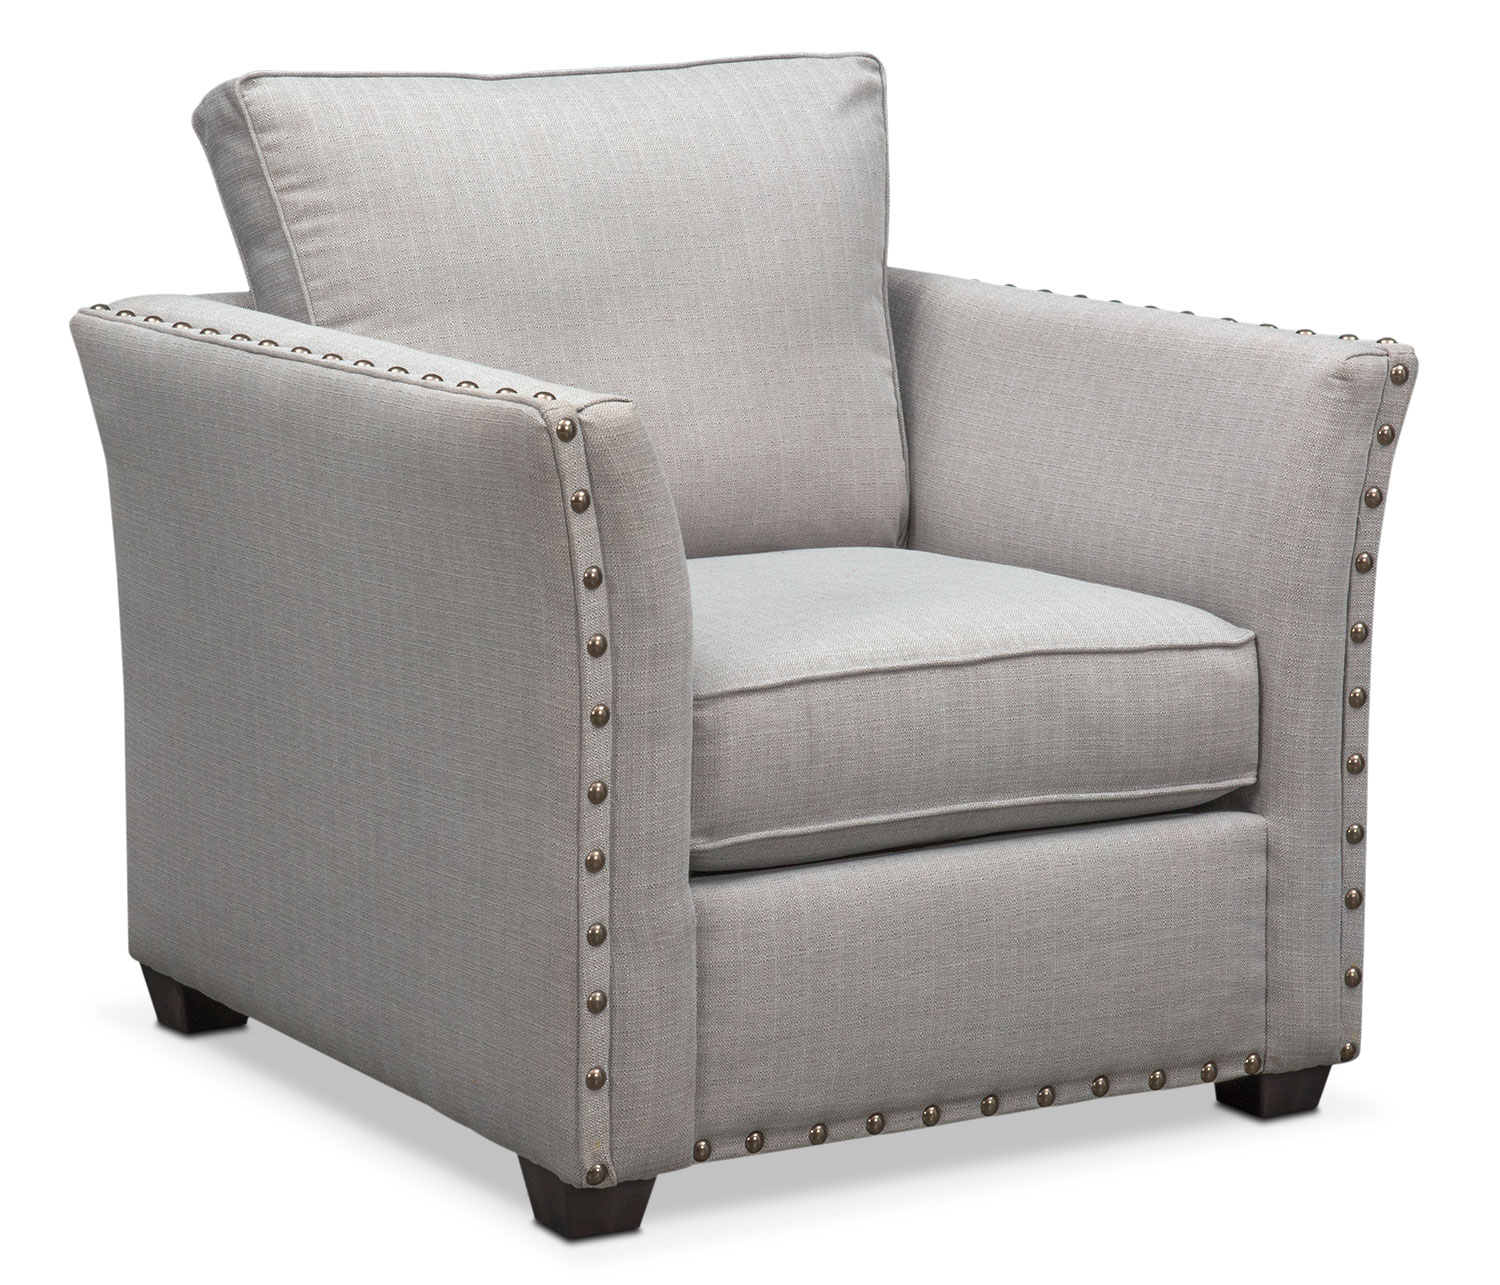 Mckenna Queen Innerspring Sleeper Sofa Loveseat And Chair Set Pewter American Signature